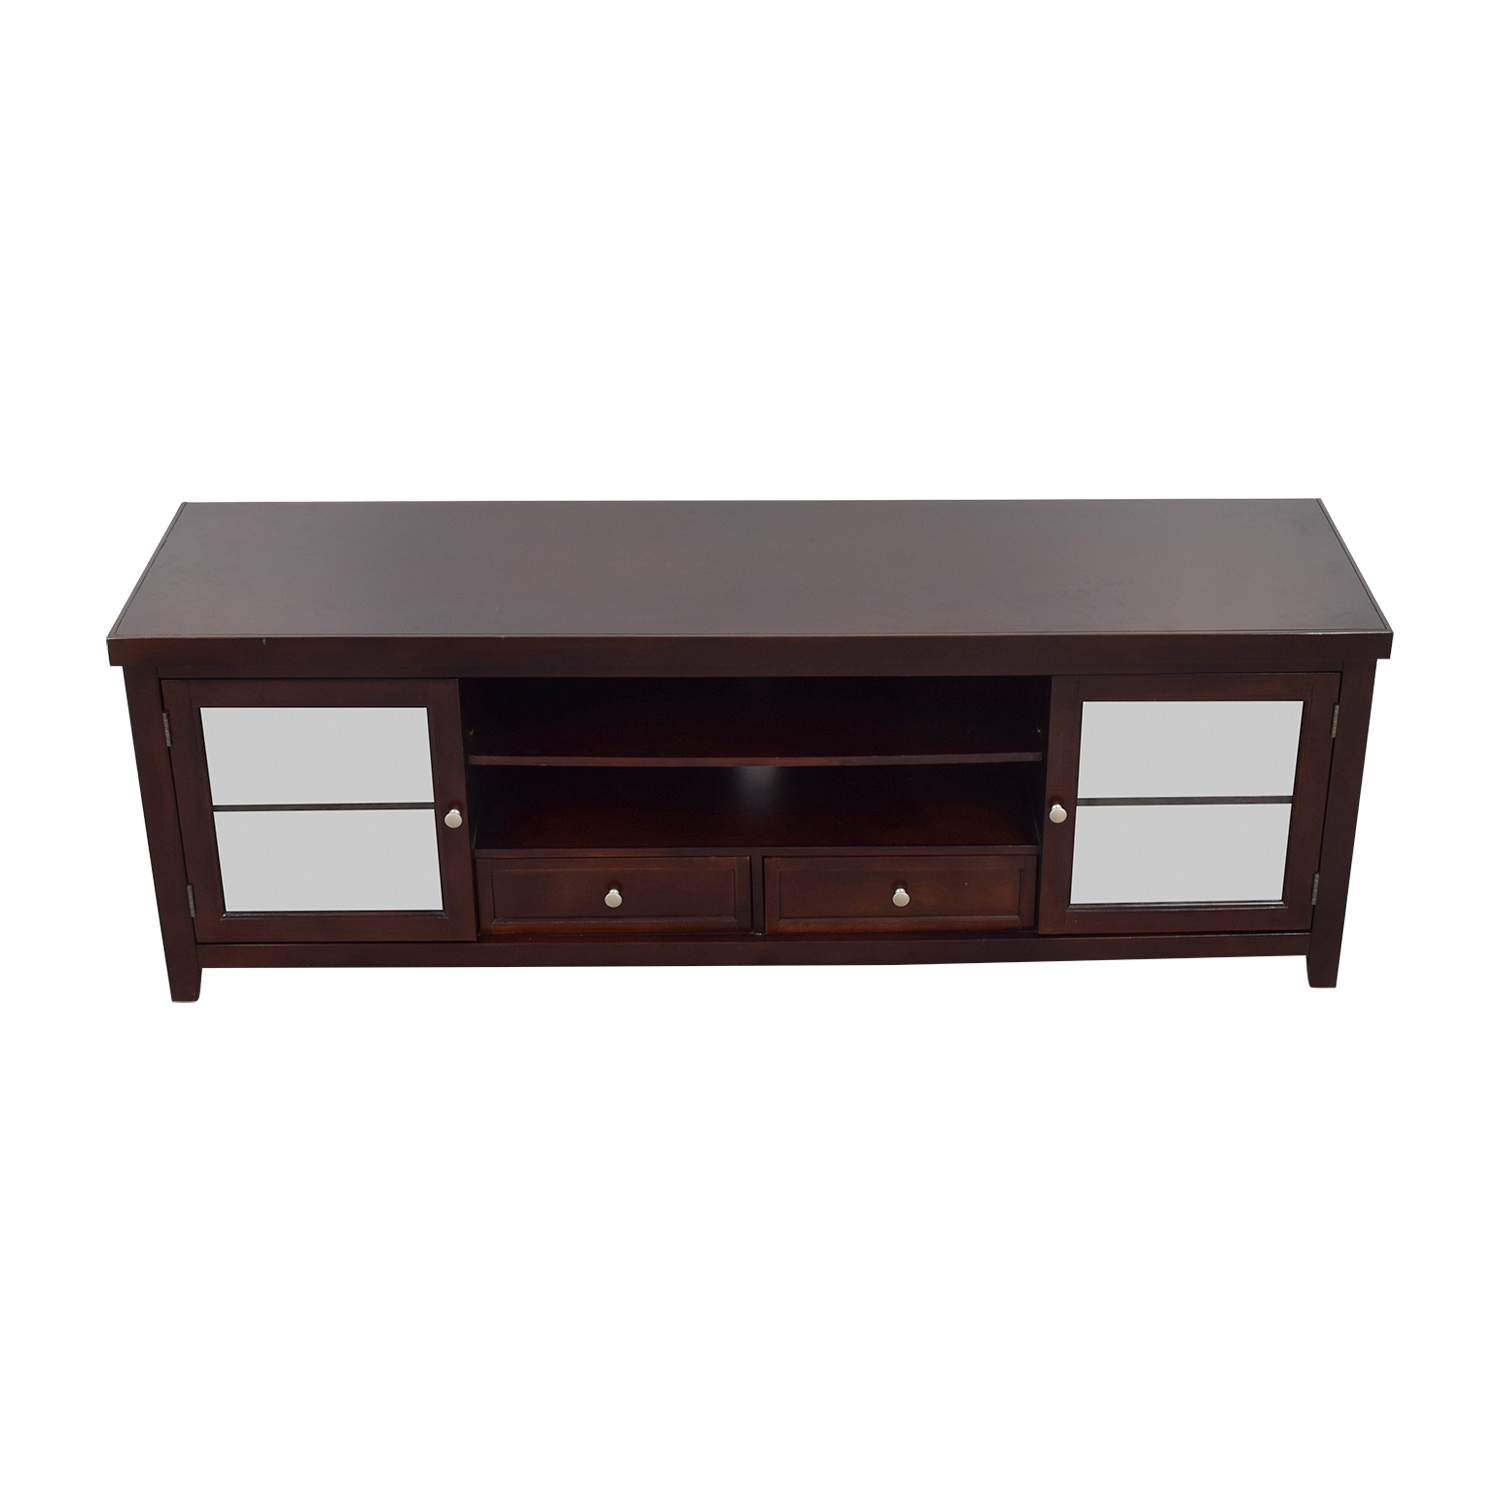 Living Spaces Living Spaces Wood and Glass TV Stand price